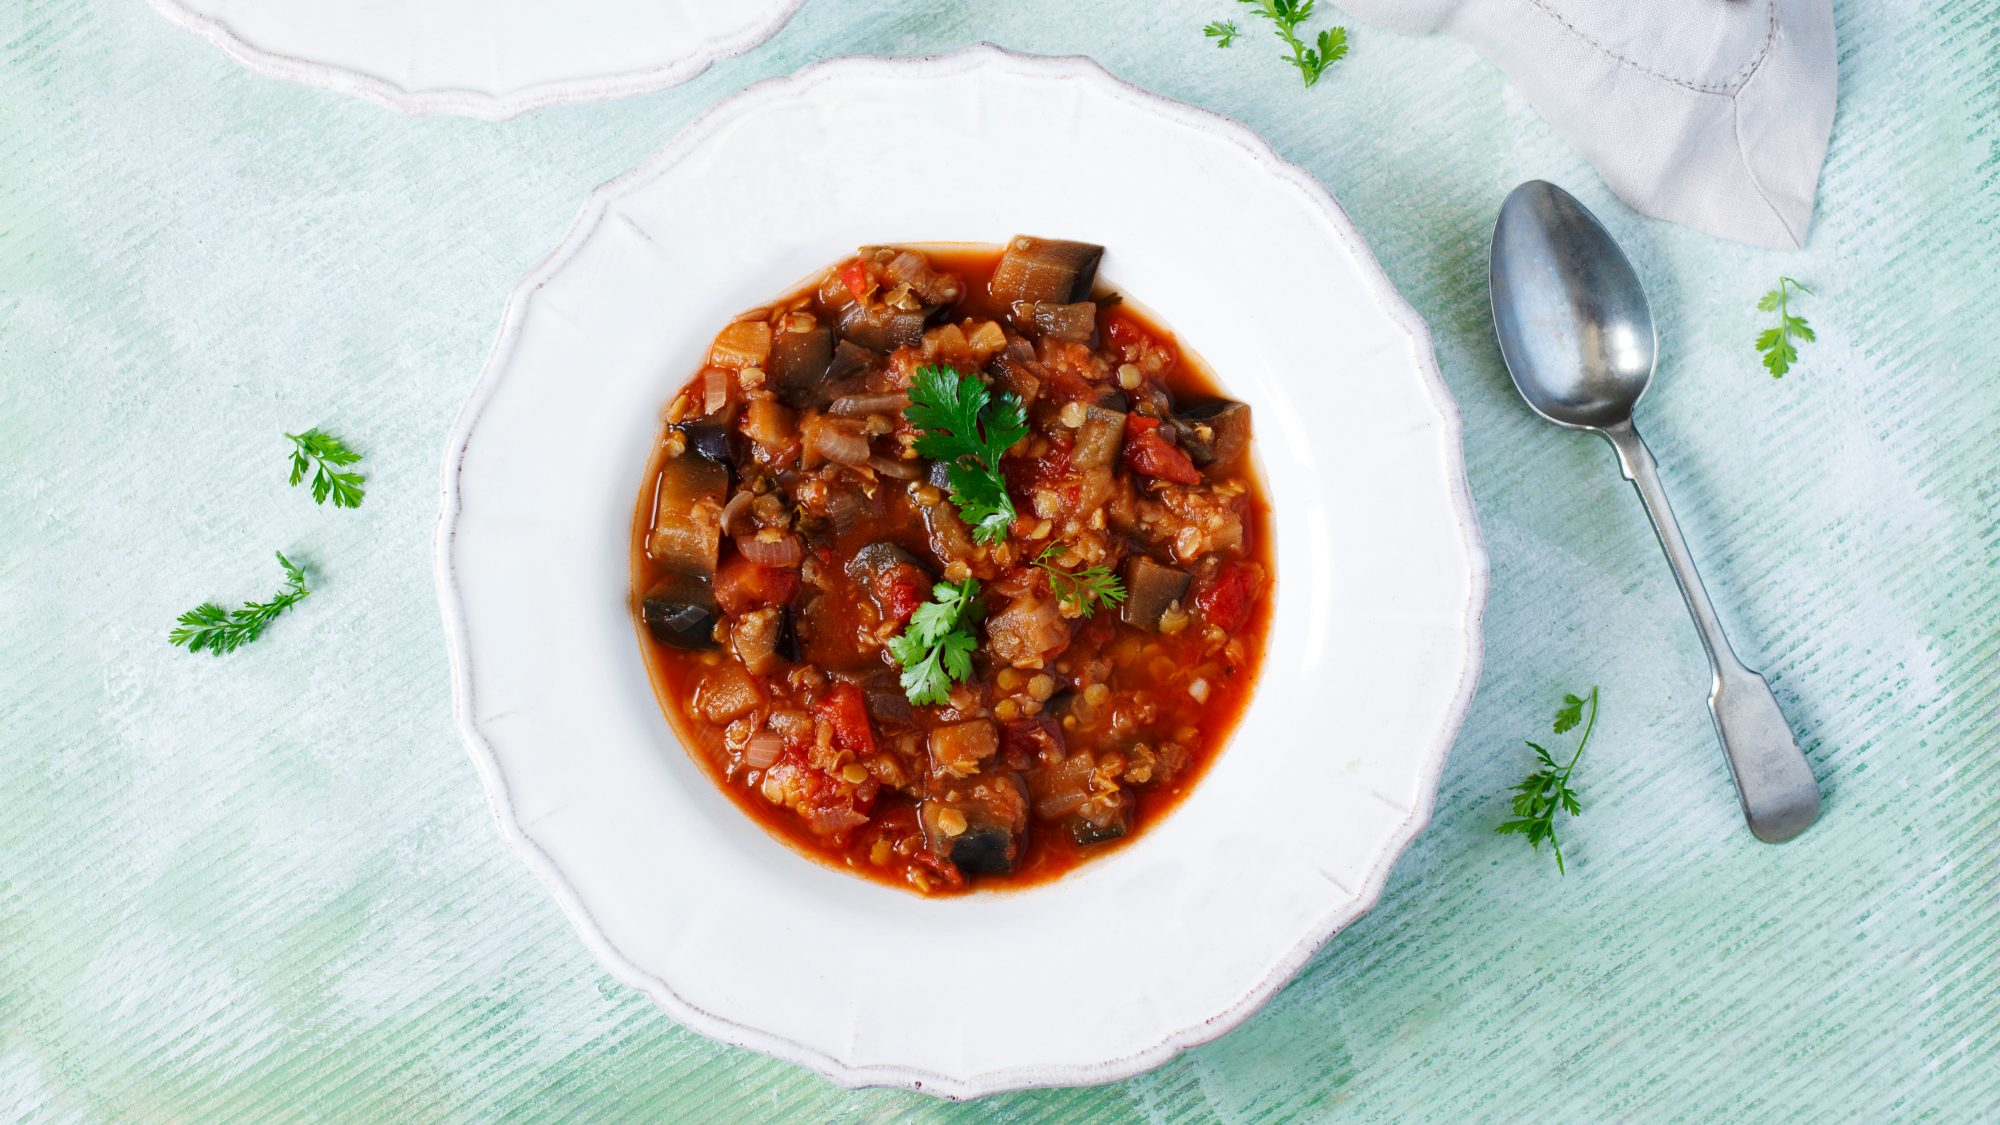 meat-free meal in a white bowl